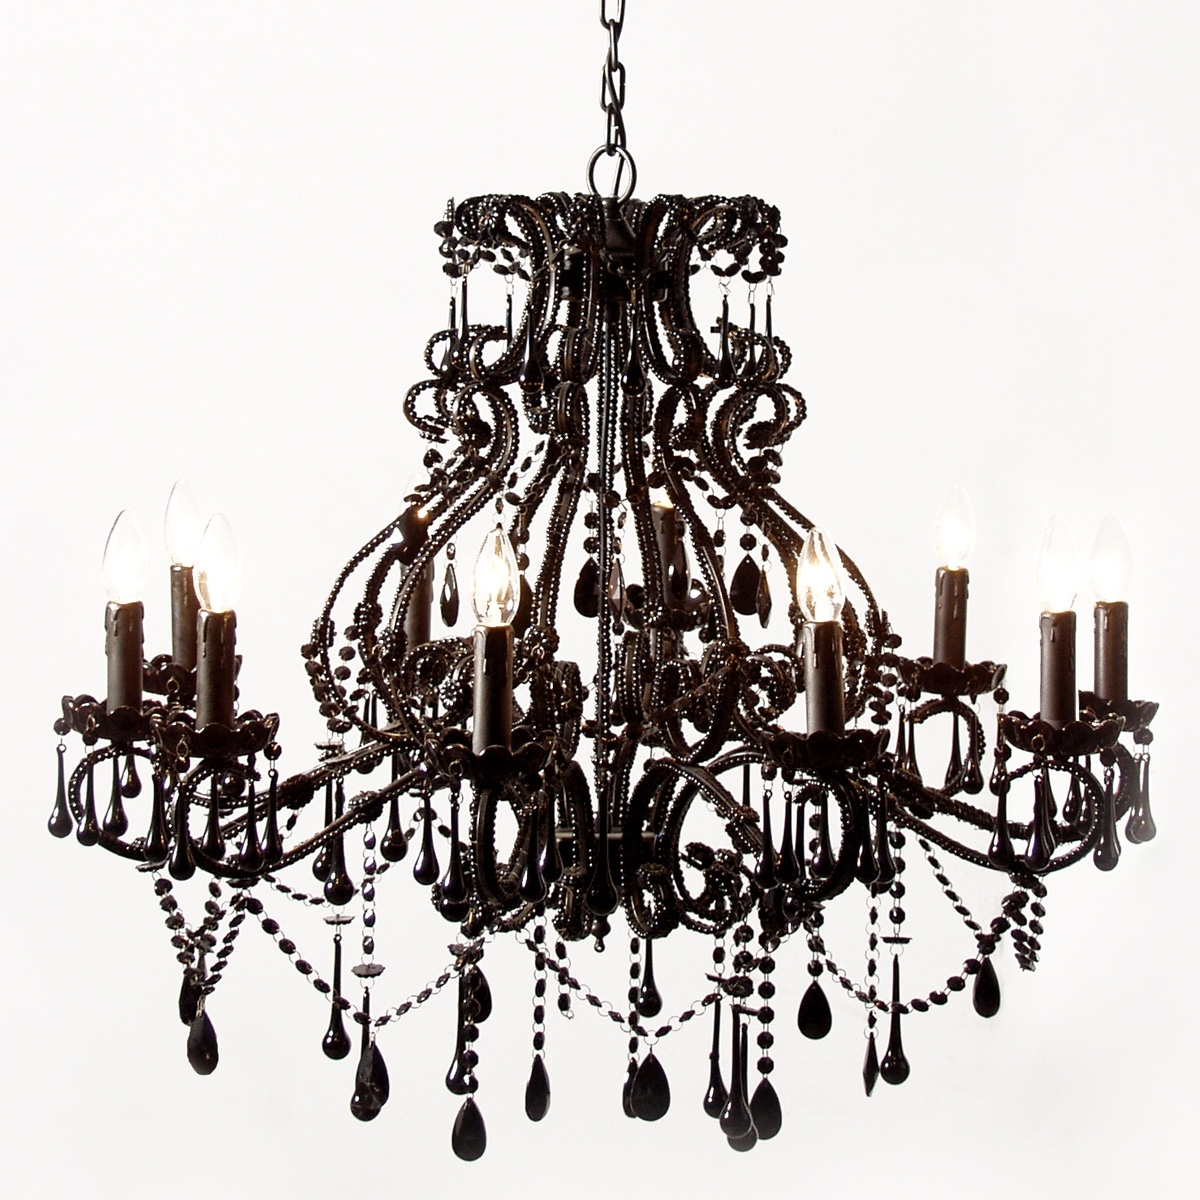 Favorite Vintage Black Chandelier Within Vintage Black Chandelier For Bedroom Image 4 – Howiezine (View 4 of 20)